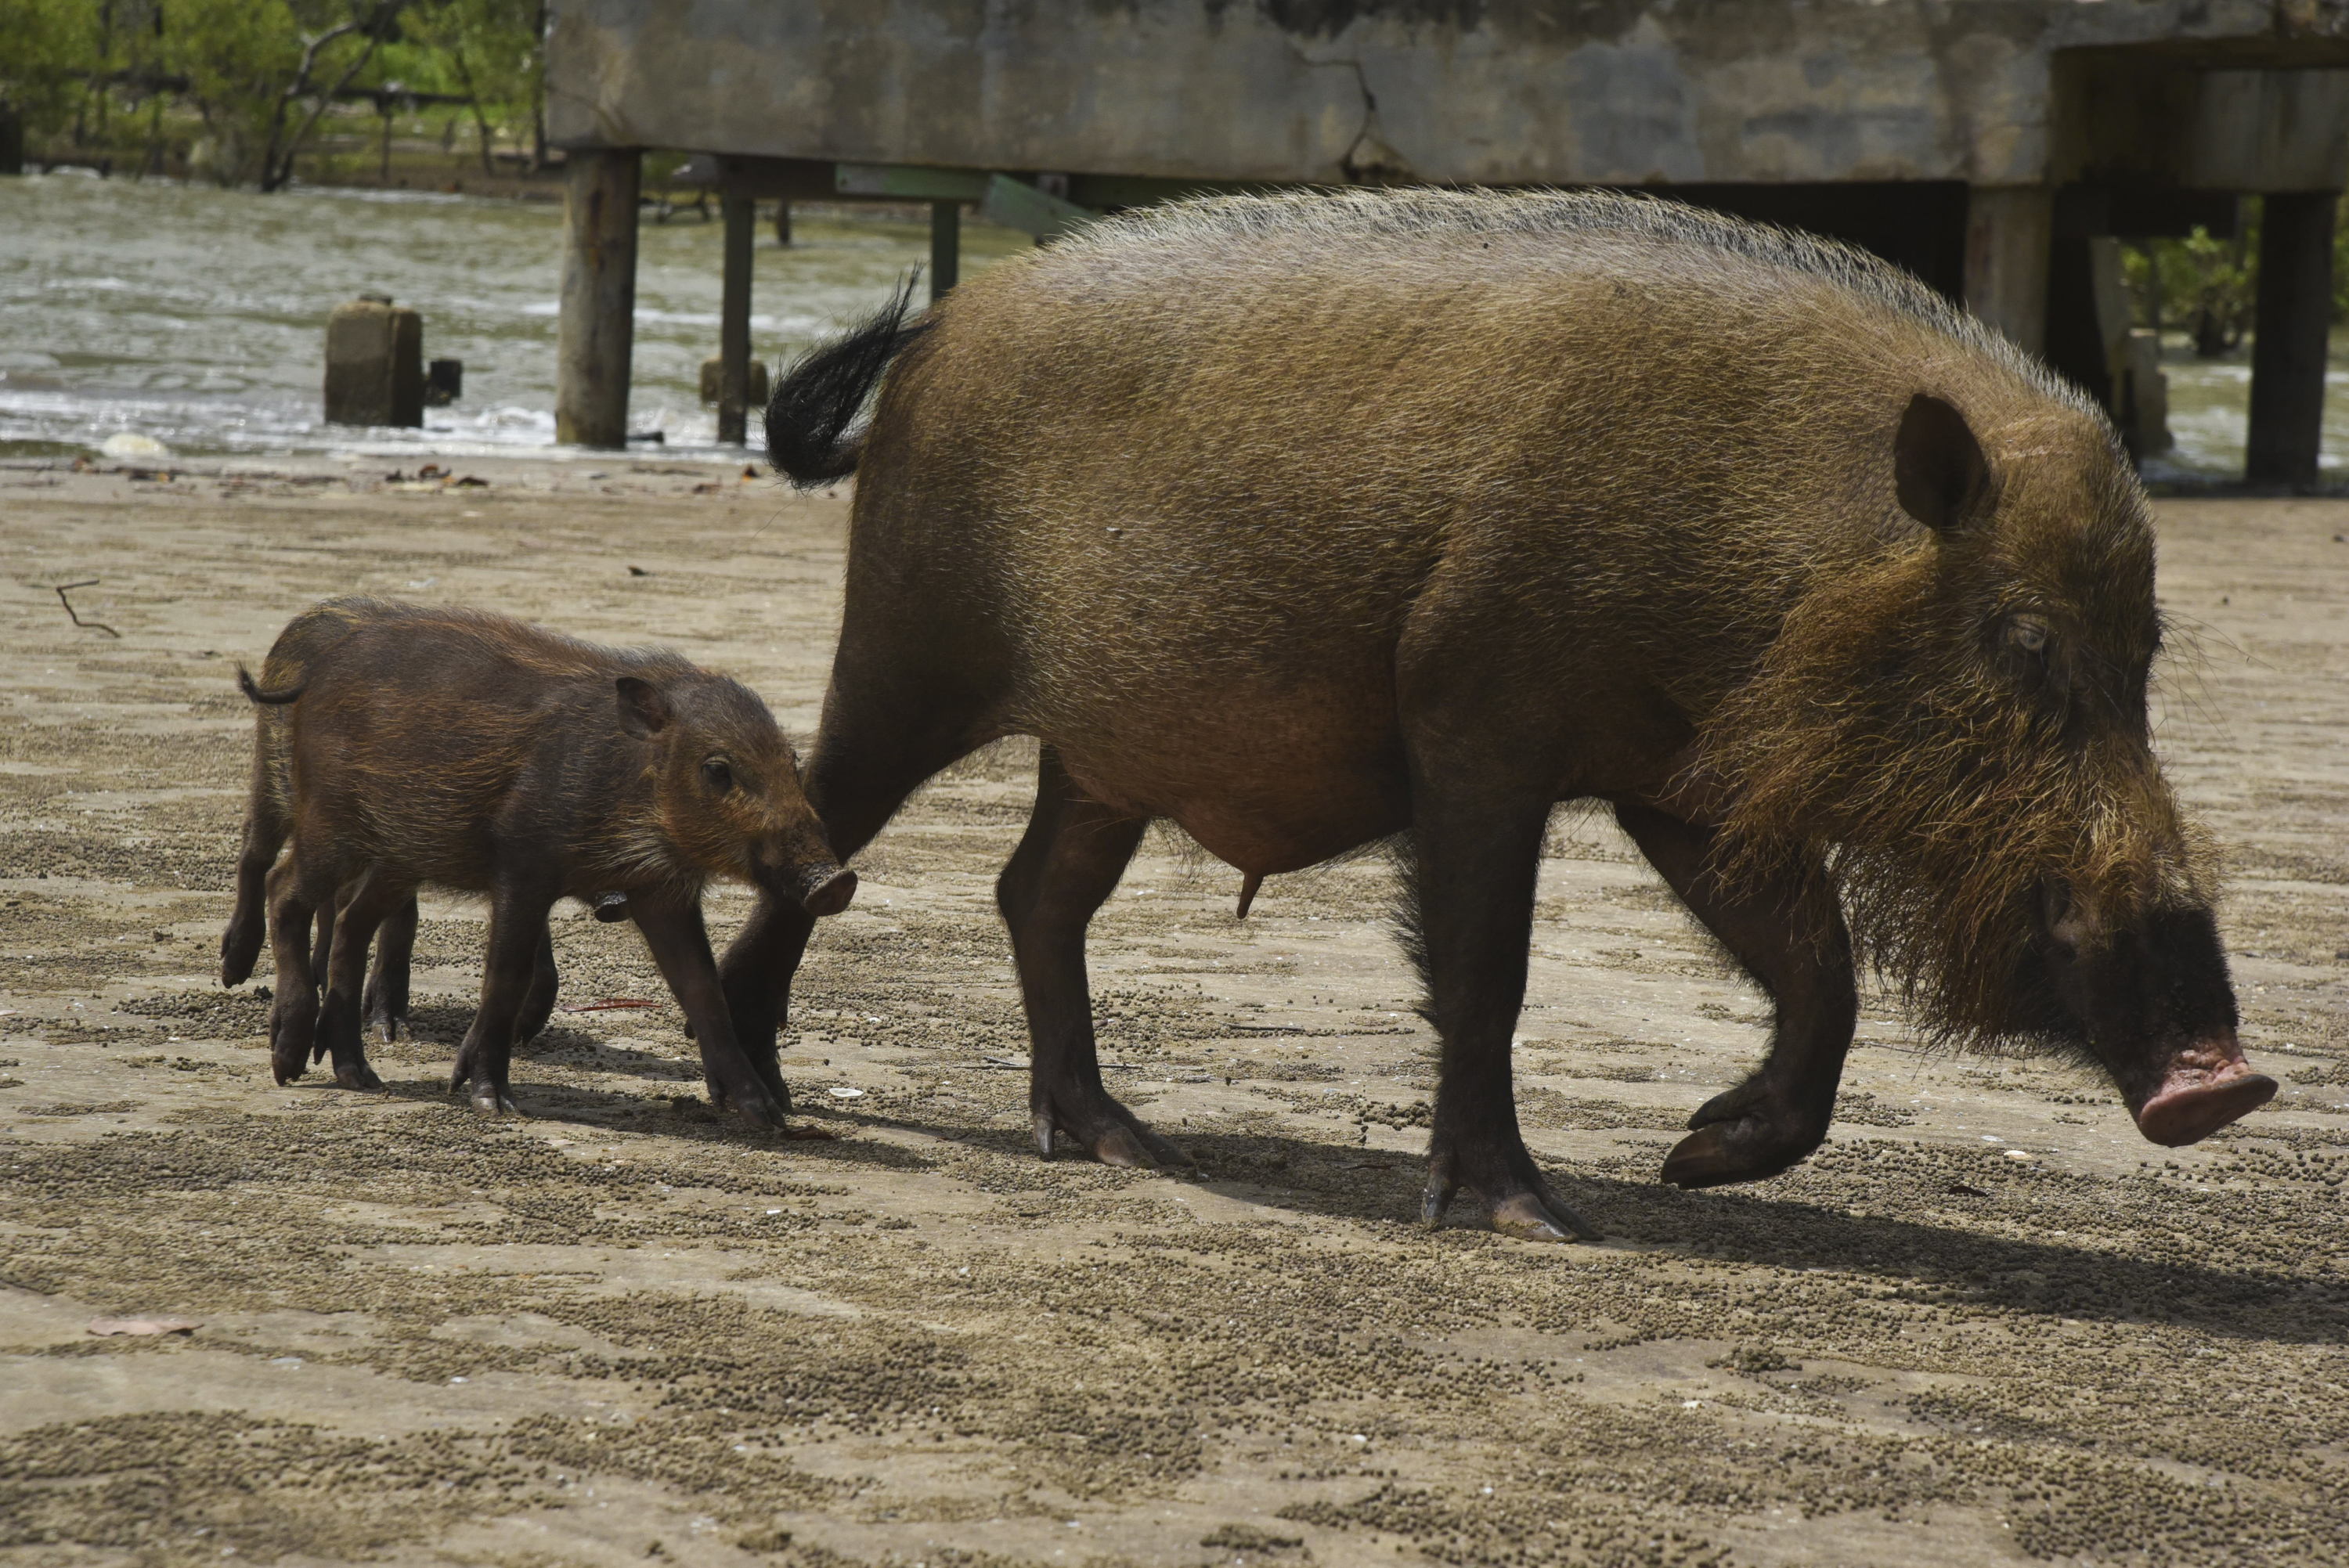 A bearded pig sow and piglet